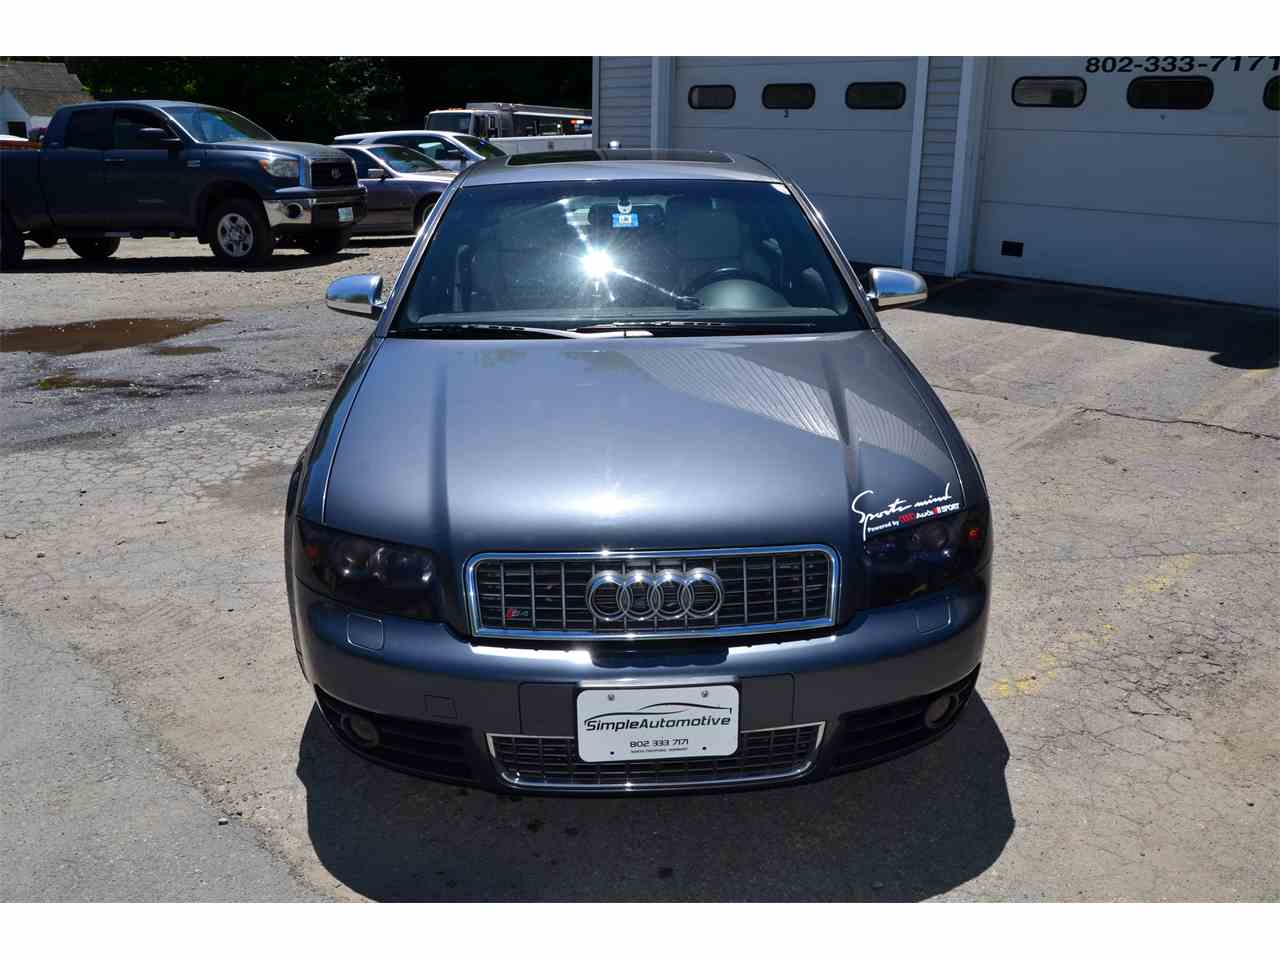 Large Picture of '04 S4 - $27,500.00 Offered by a Private Seller - LBPO